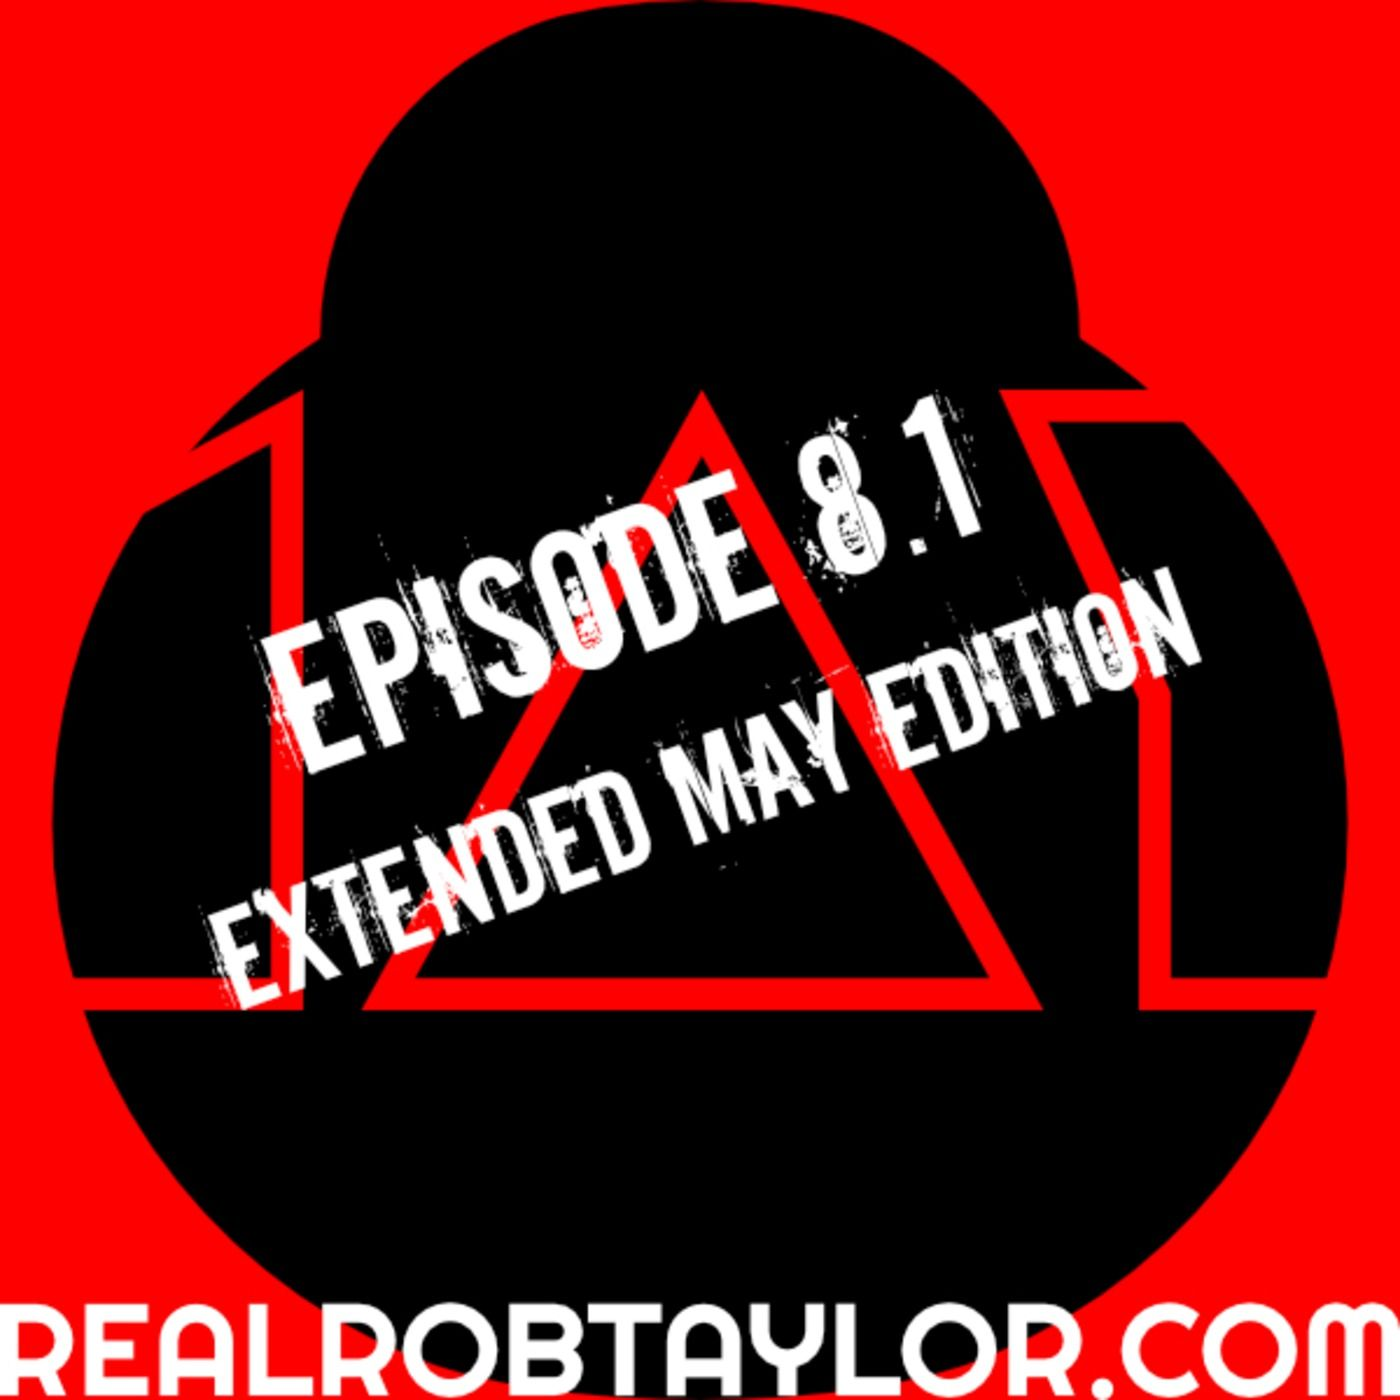 The Real Rob Taylor Ep.8.1 | EXTENDED MAY EDITION